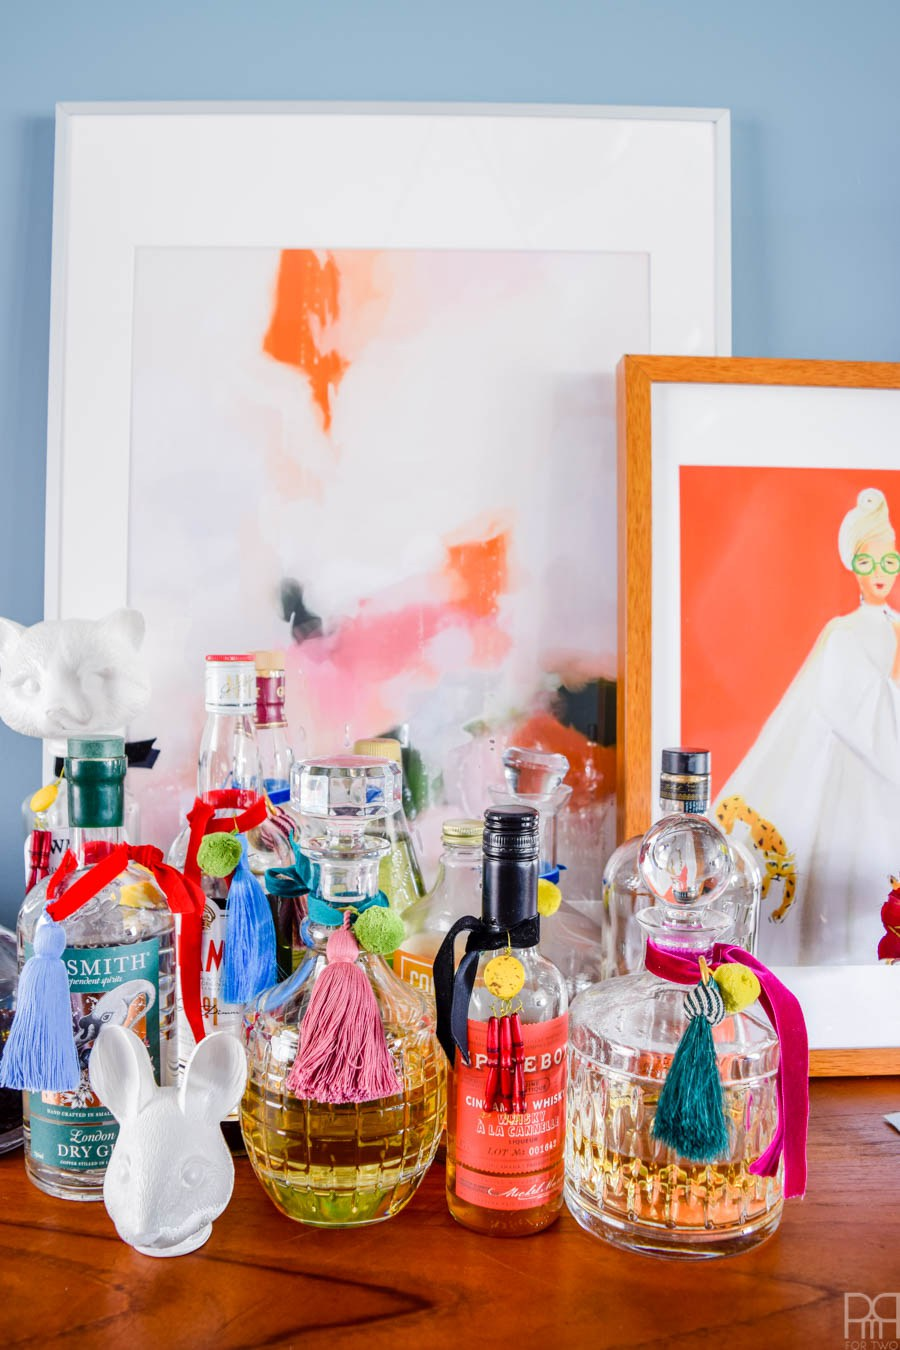 Eclectic Home Tour of PMQ for Two - get tons of renter friendly decorating and DIY ideas - love these DIY tassels for liquor bottles